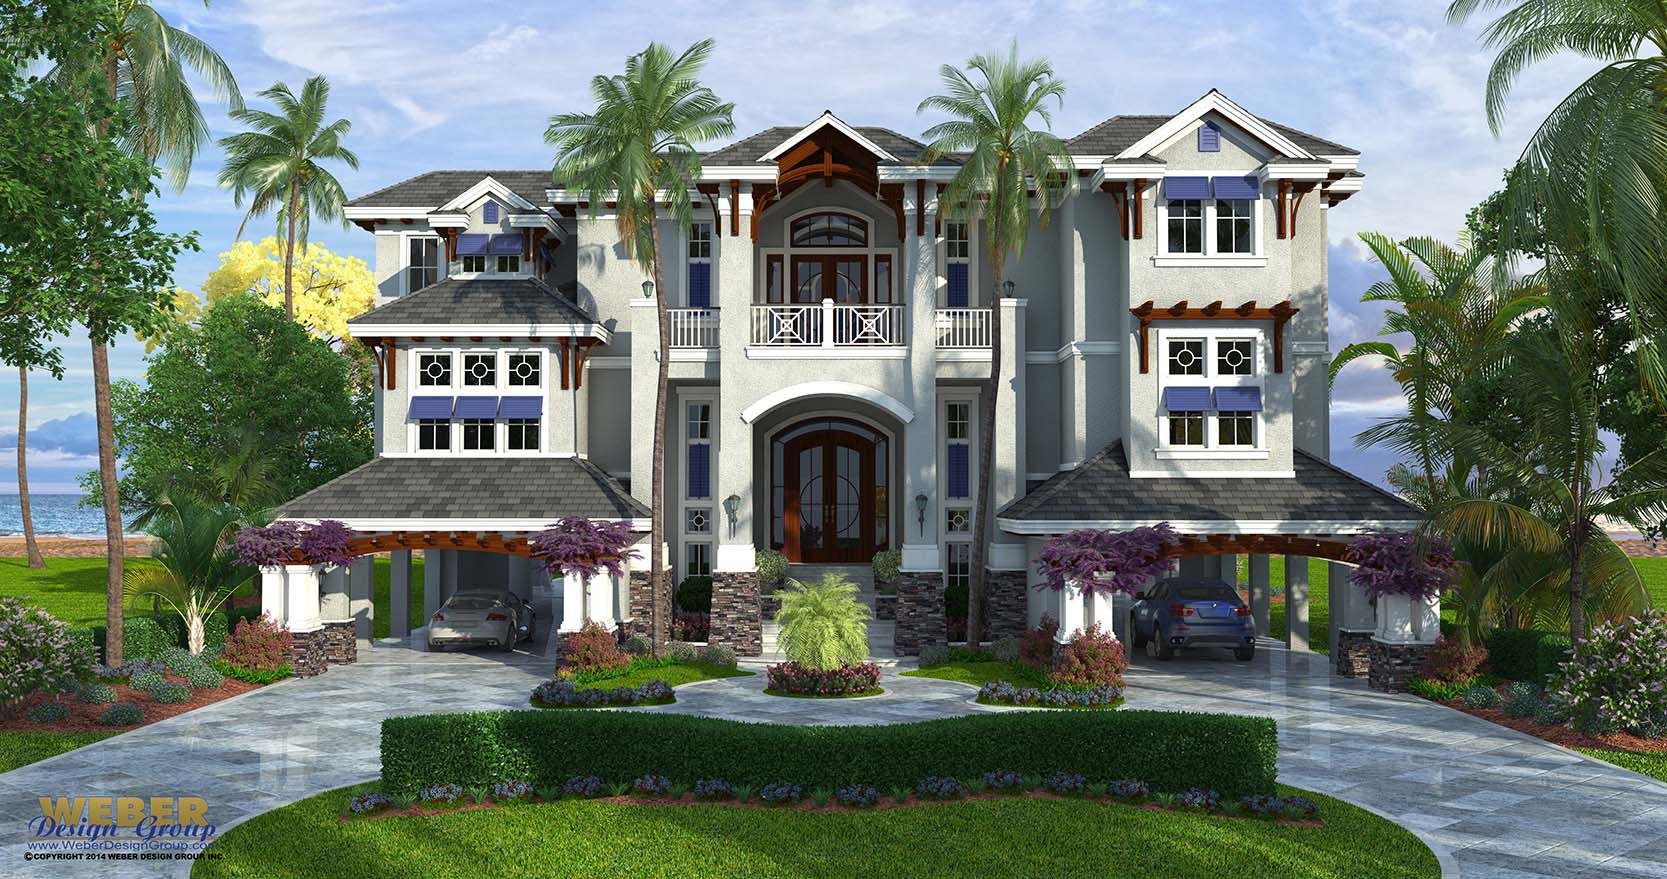 Coastal style house plan 3 story floor plan outdoor for Coastal style home designs